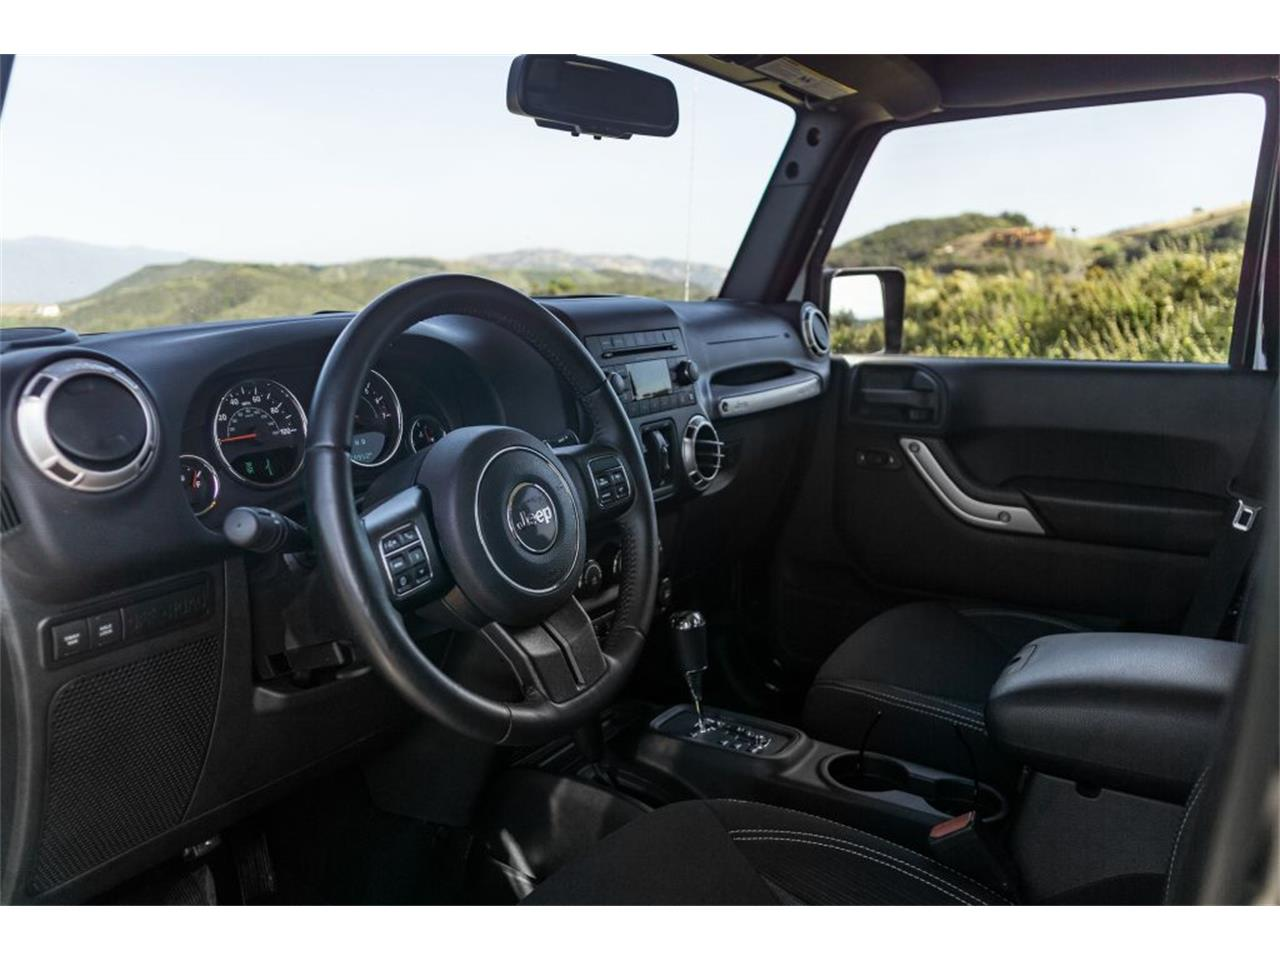 Large Picture of '16 Wrangler located in Temecula California Offered by Fortunauto 13 LLC - QB2E